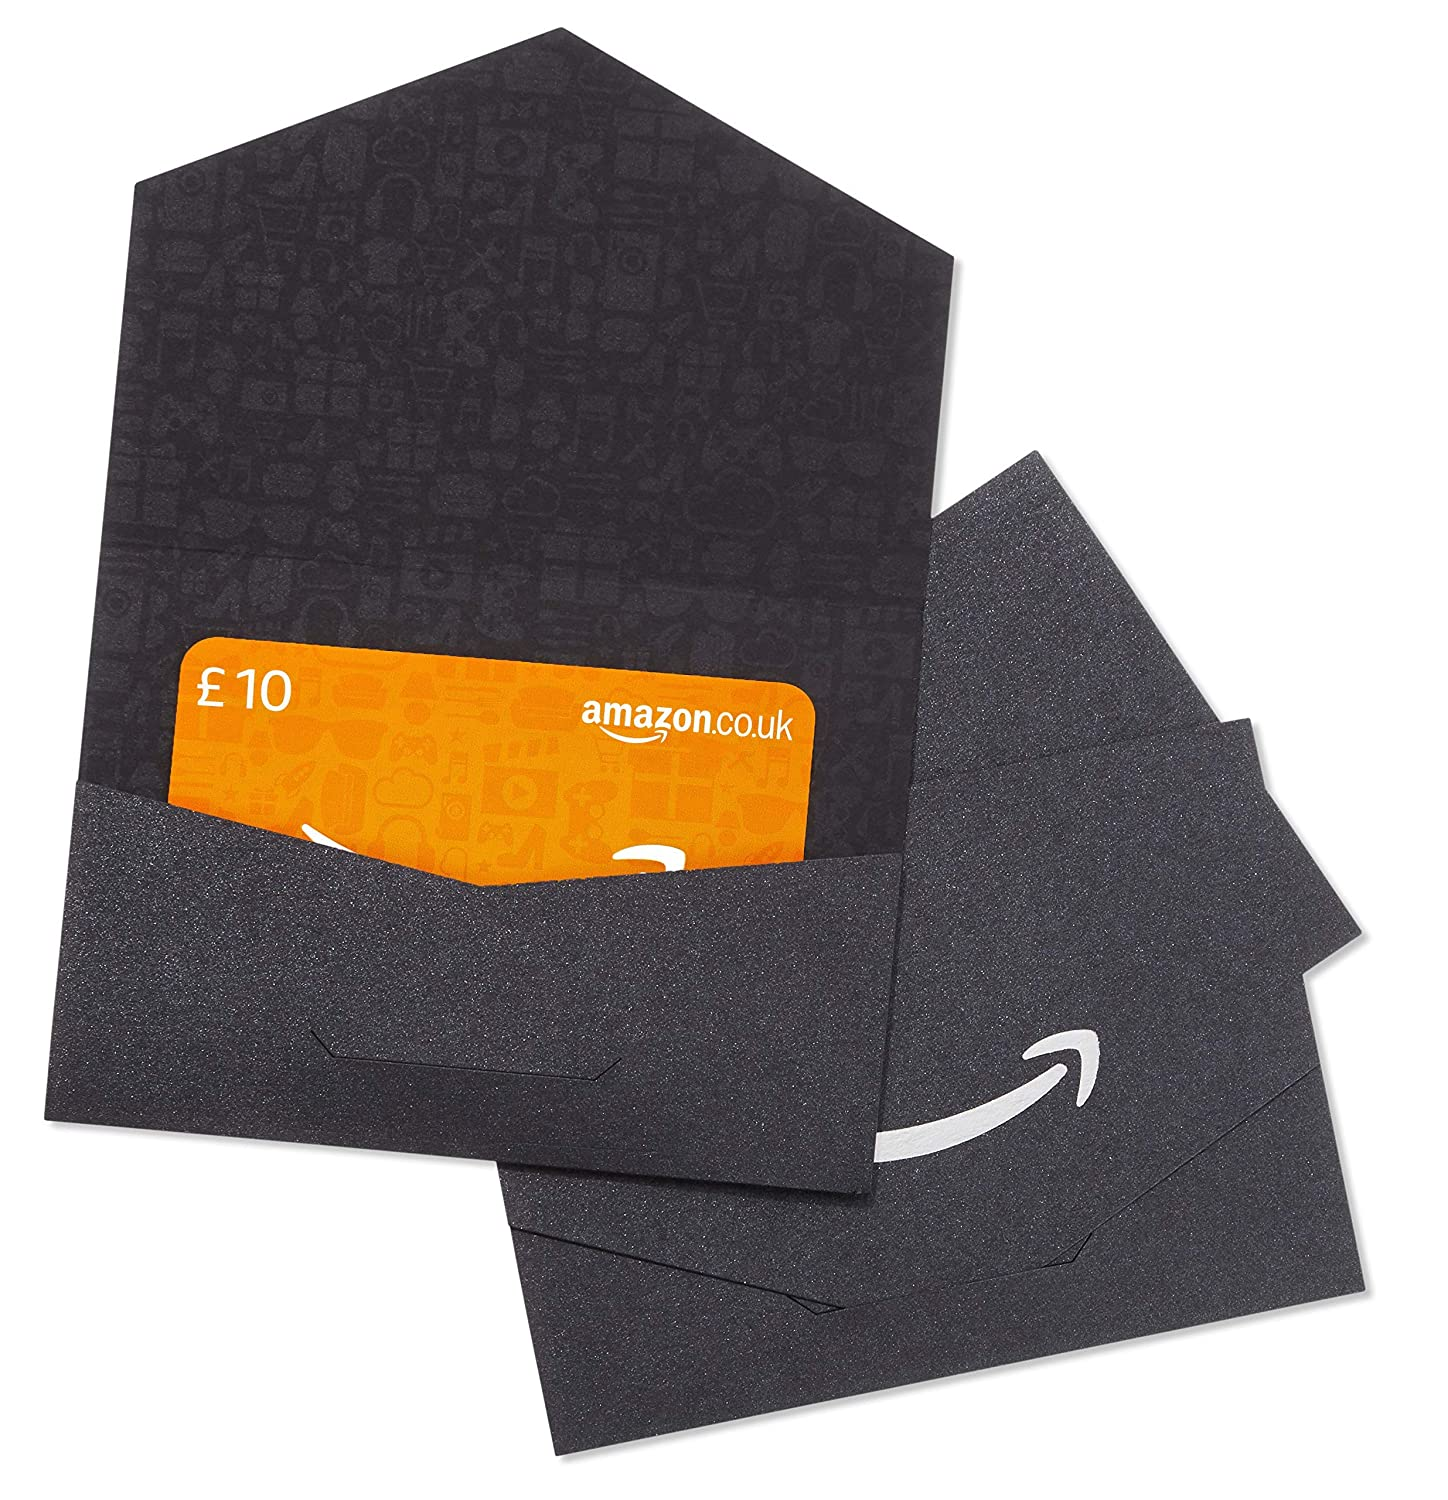 Amazon.co.uk Gift Card - In a Mini Envelope- Pack of 3 - £10 (Black and Silver) Amazon EU S.à.r.l. Fixed